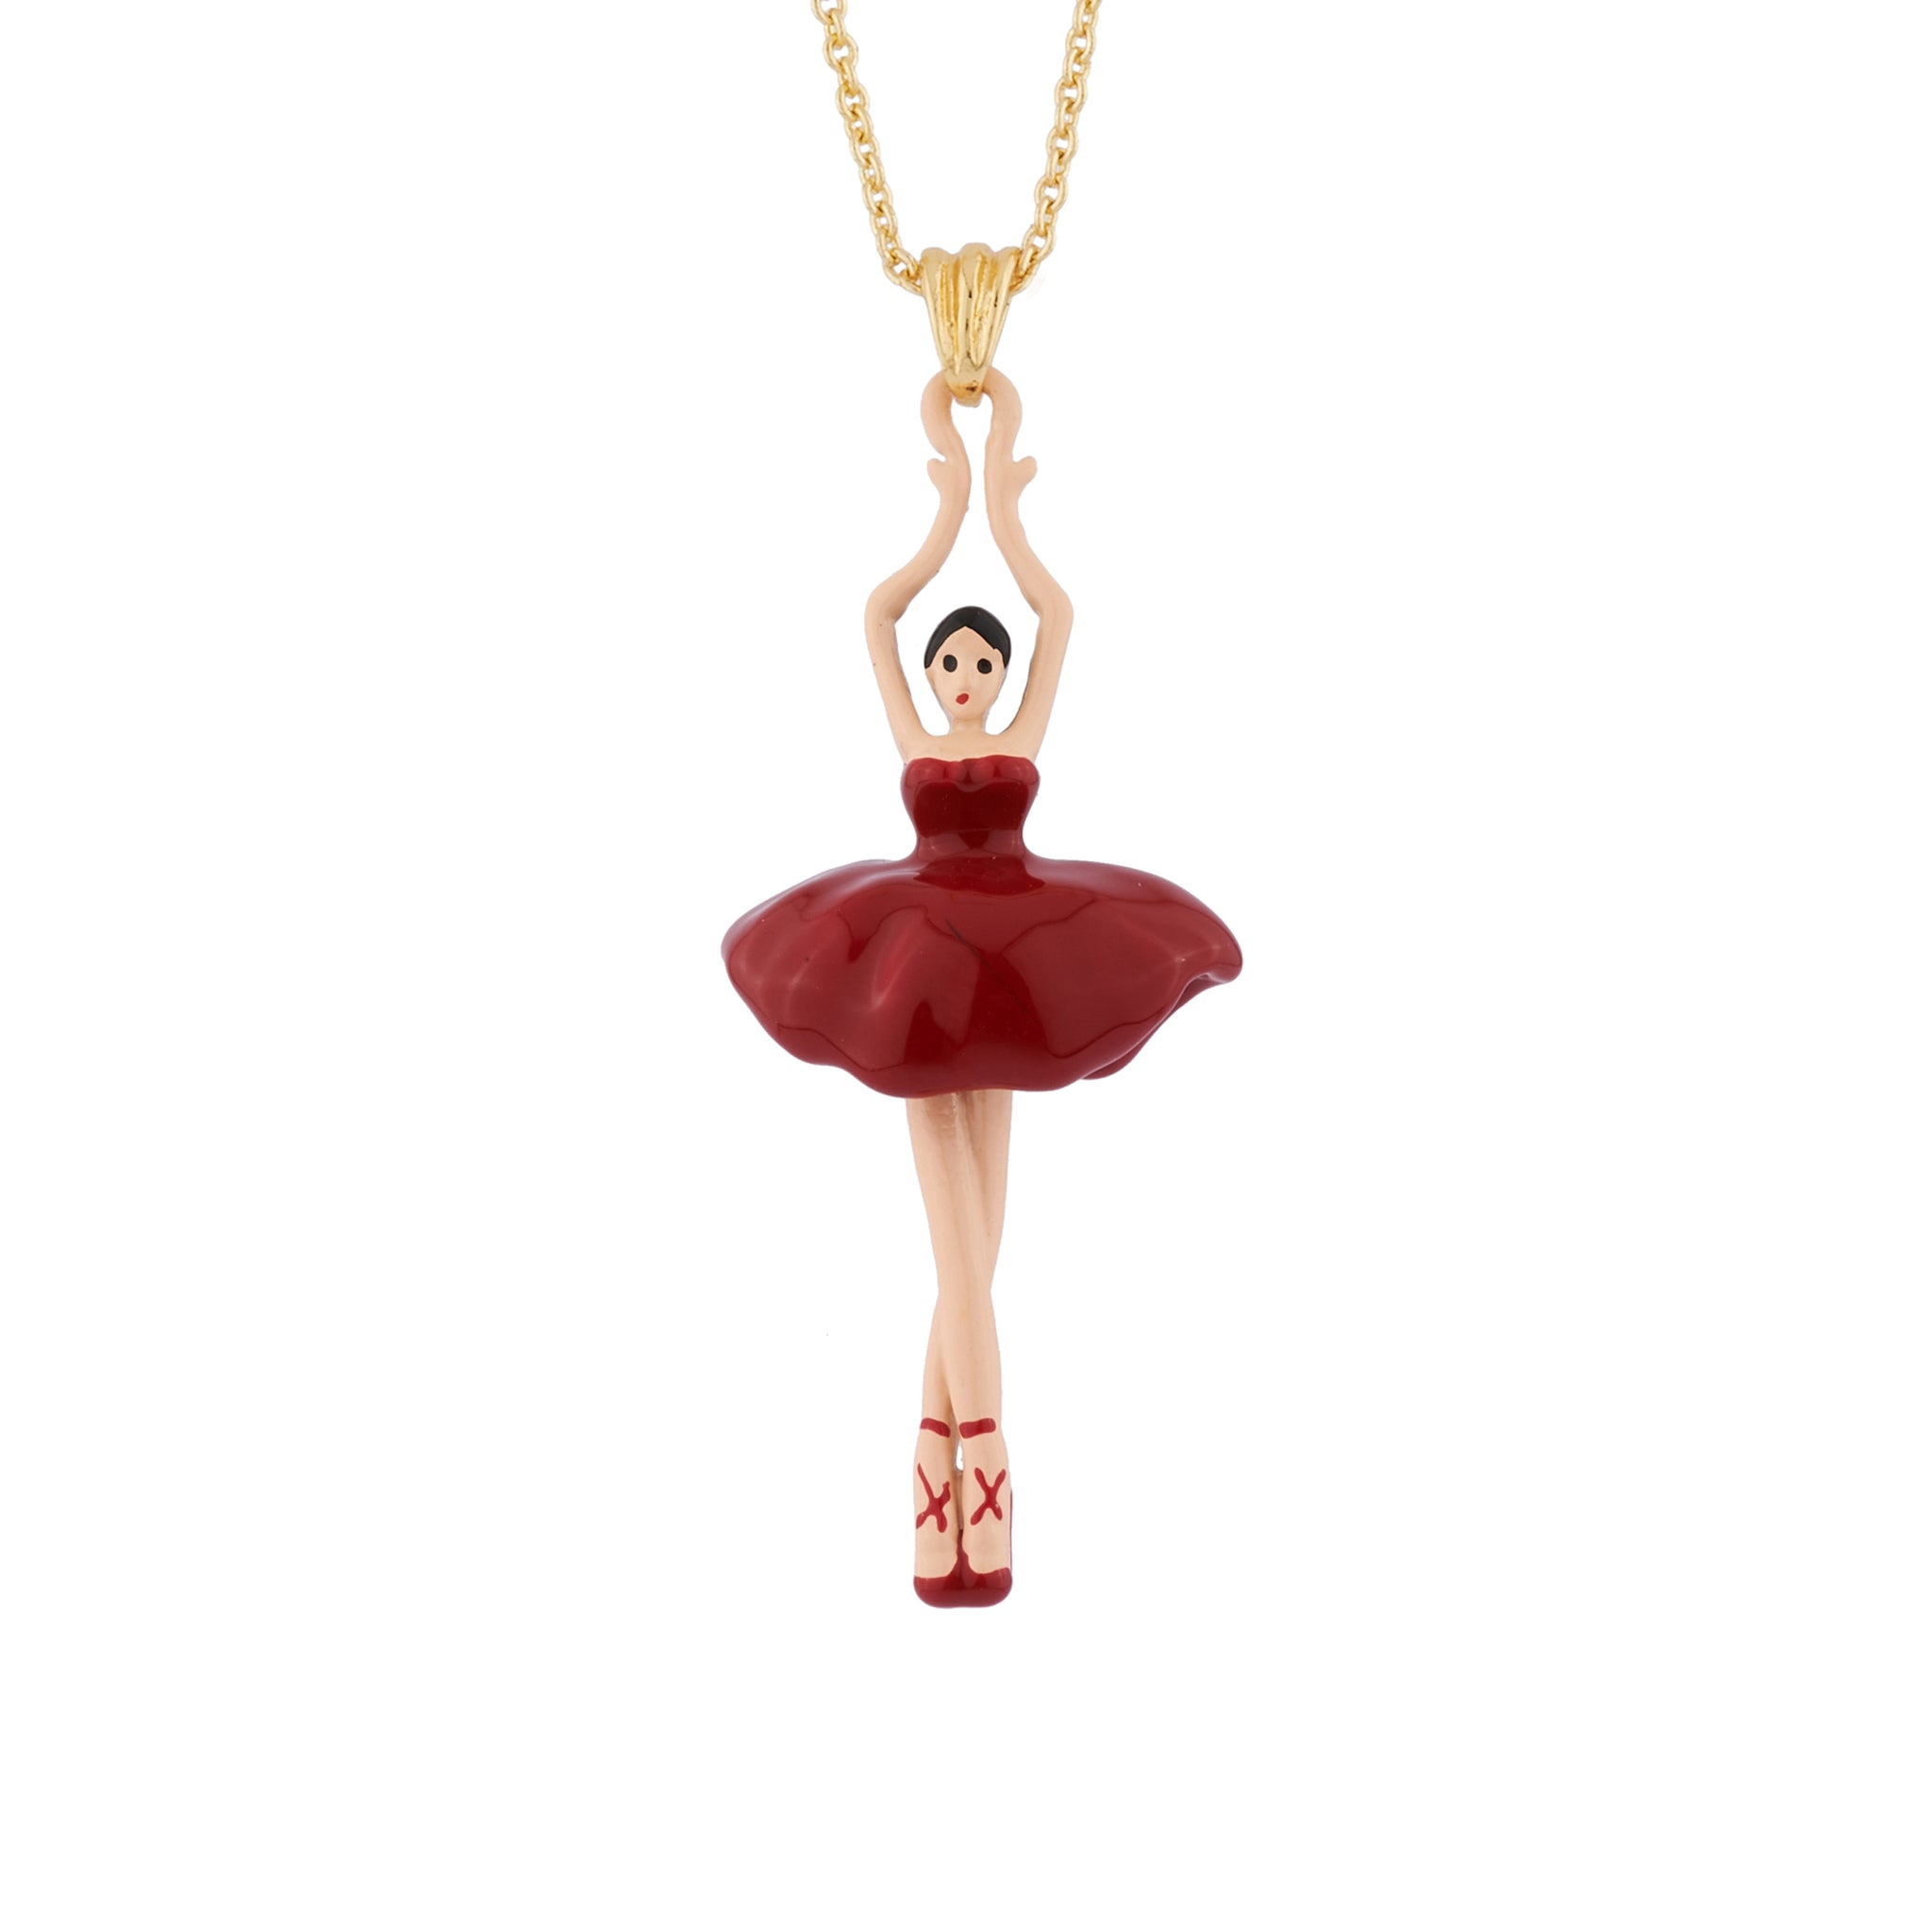 Pendant Necklace with Red Toe-dancing Ballerina